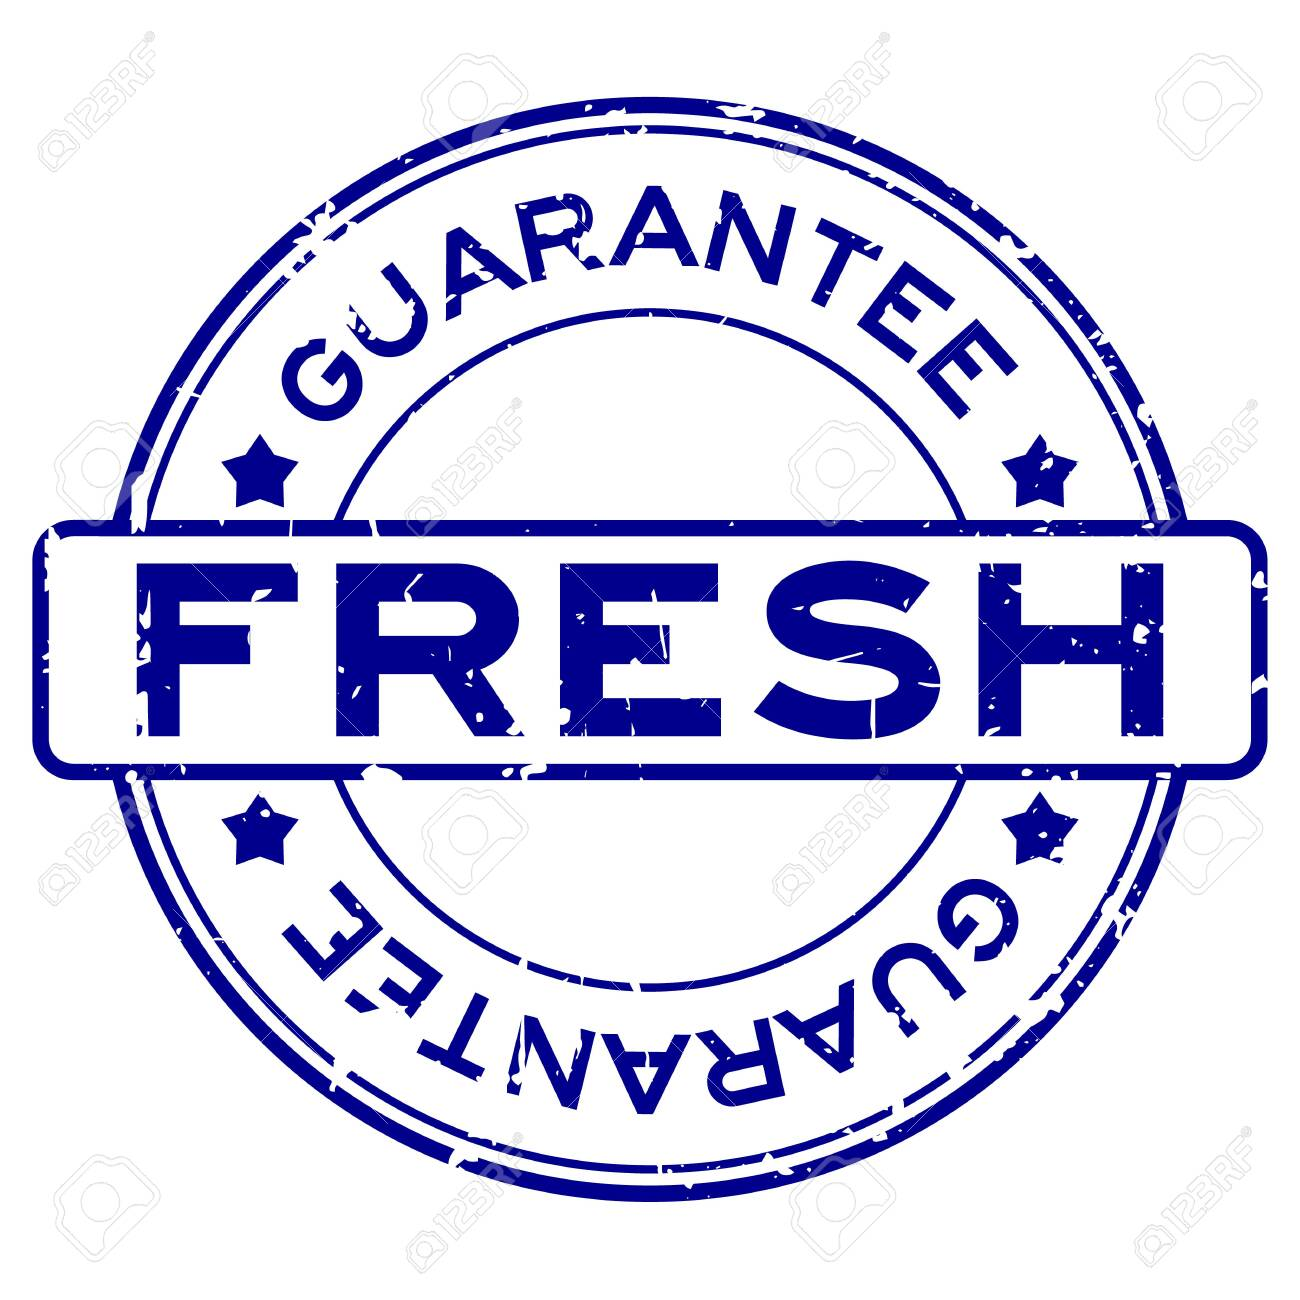 Grunge blue fresh guarantee word round rubber seal stamp on white background - 146807143